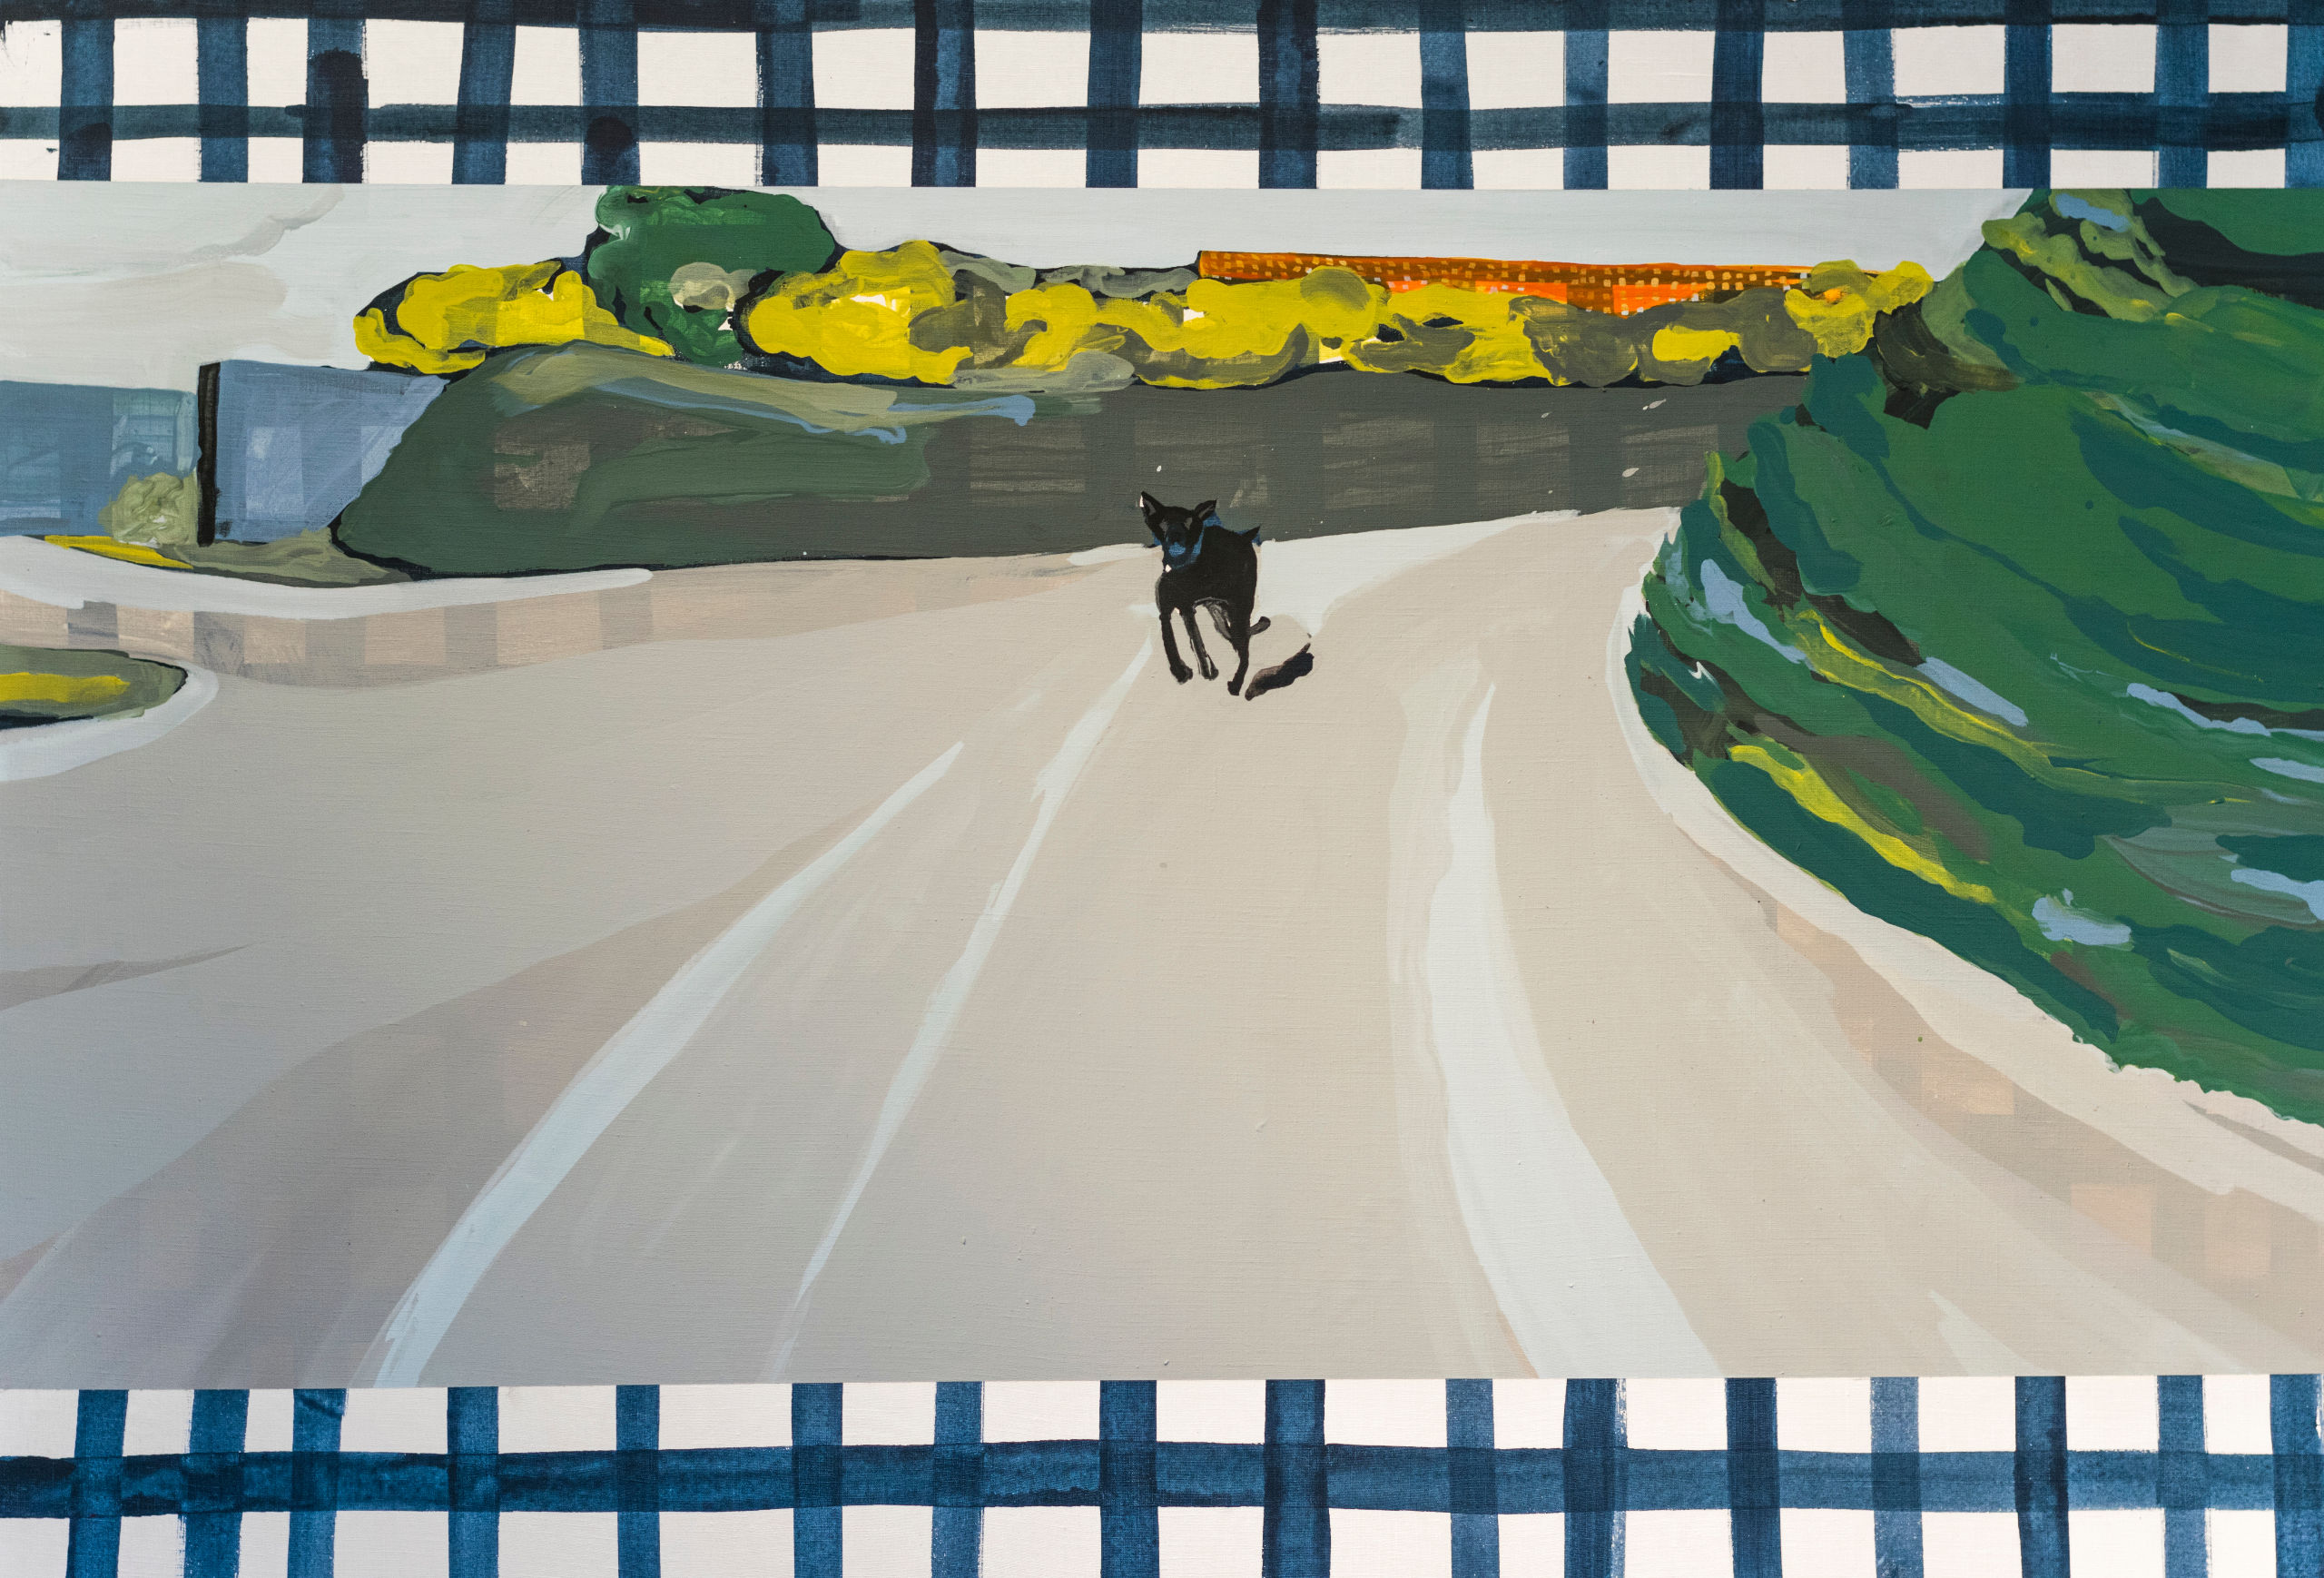 Painting of dog running down road with green vegetation on either side.